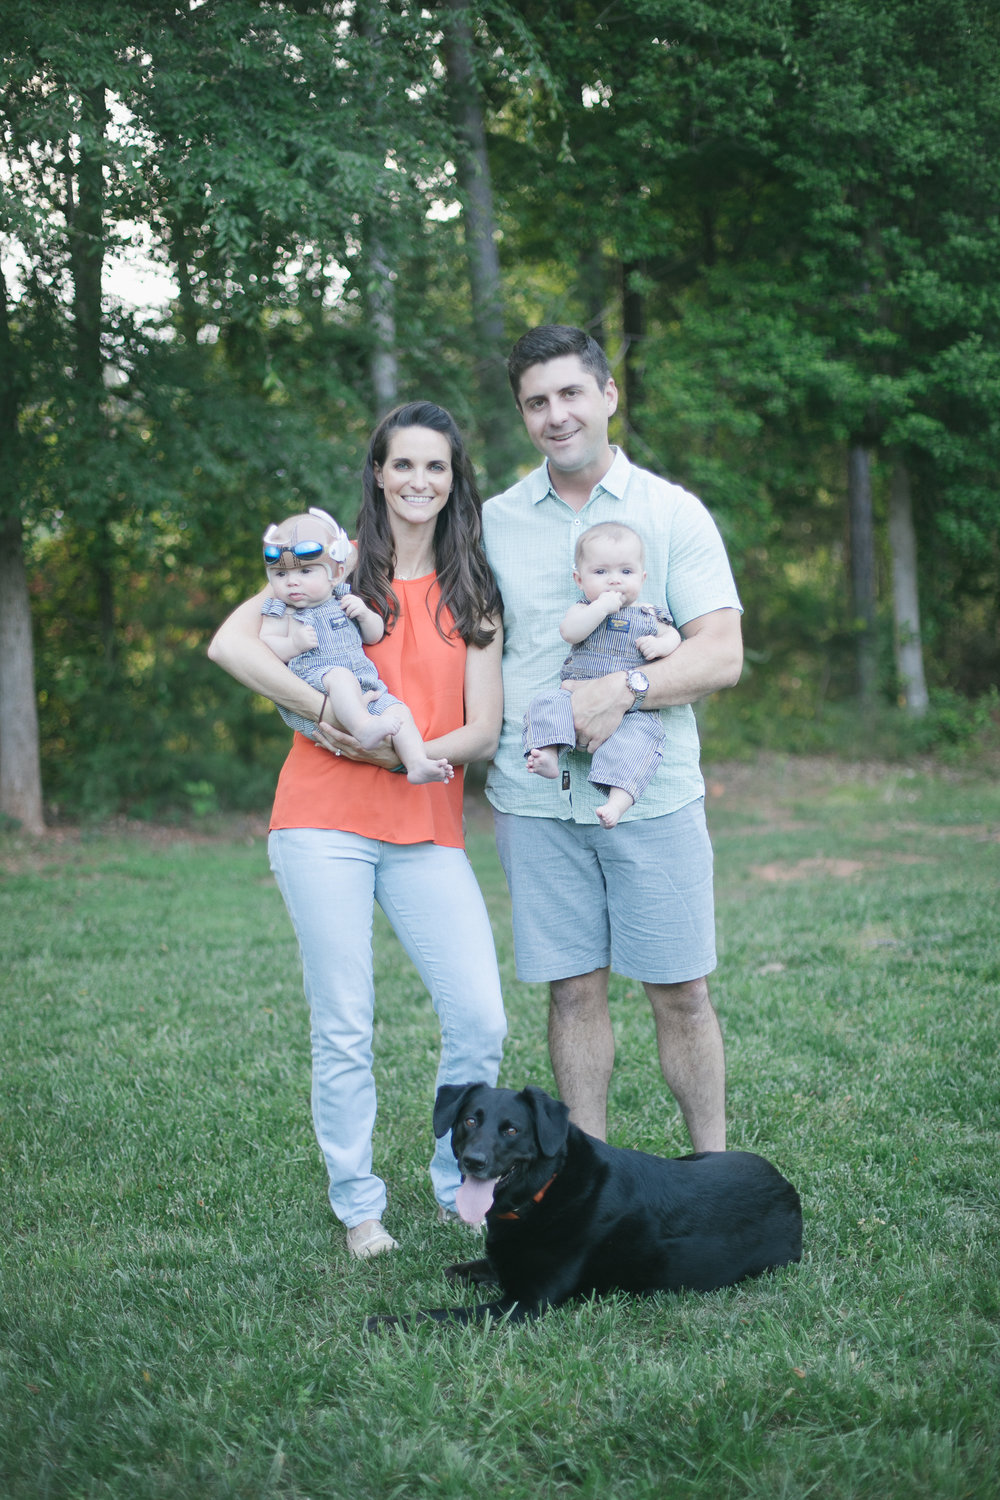 IVF-Twin-Family-Lifestyle-Session-Lake-Norman-Charlotte-NC-Danielle-Gallo-Photography.jpg